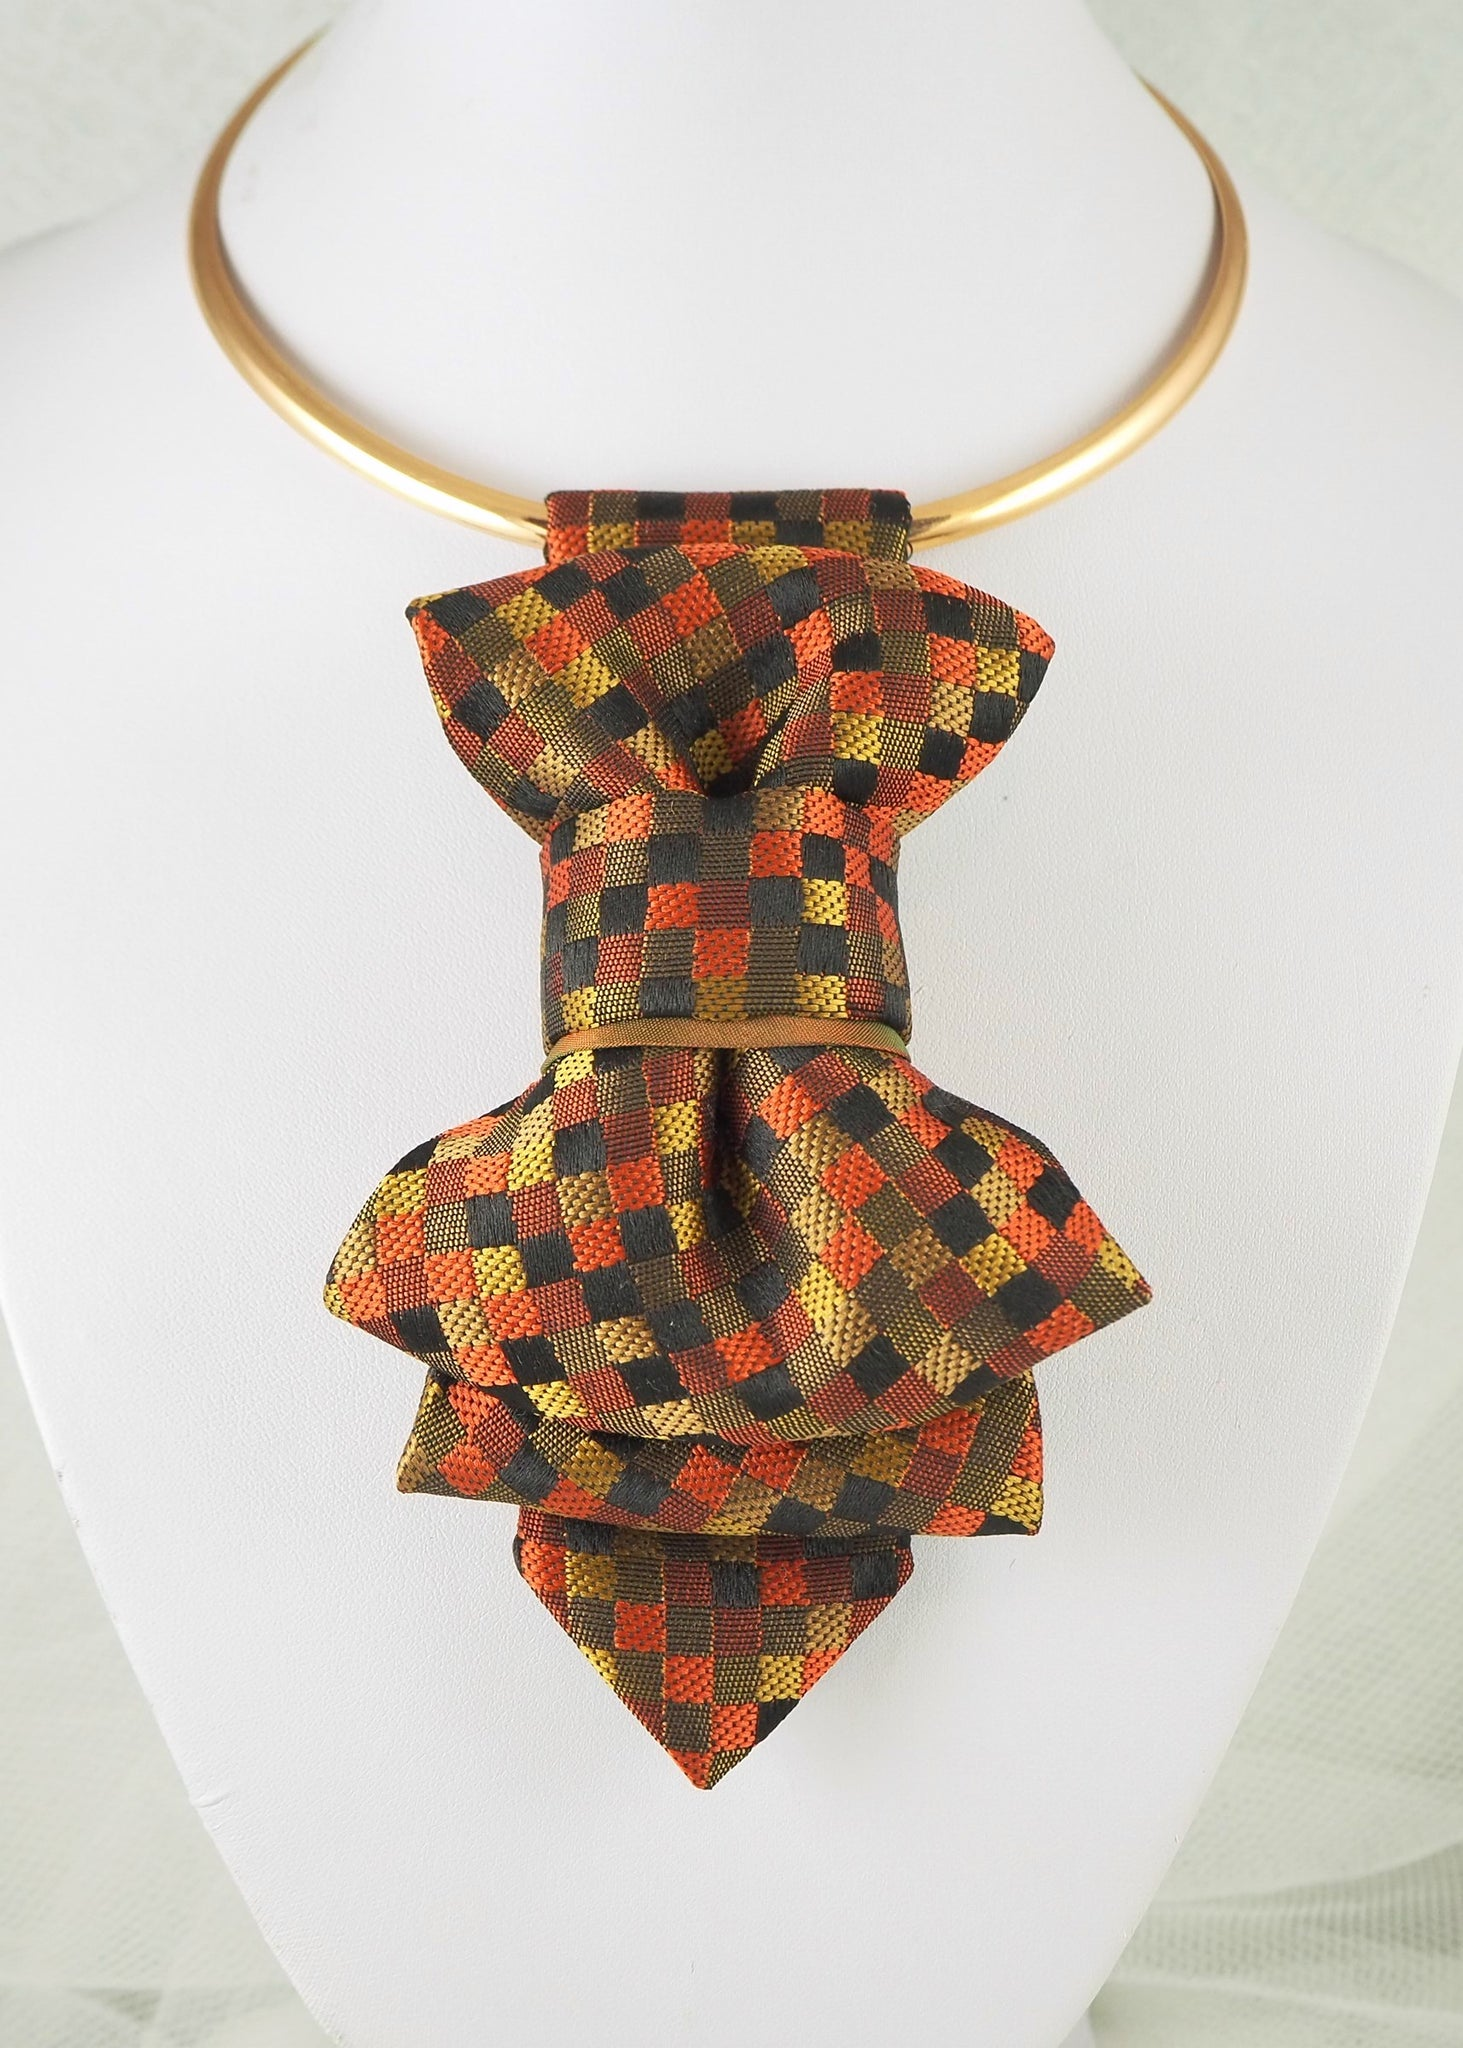 Hopper tie for women created by Ruty Design